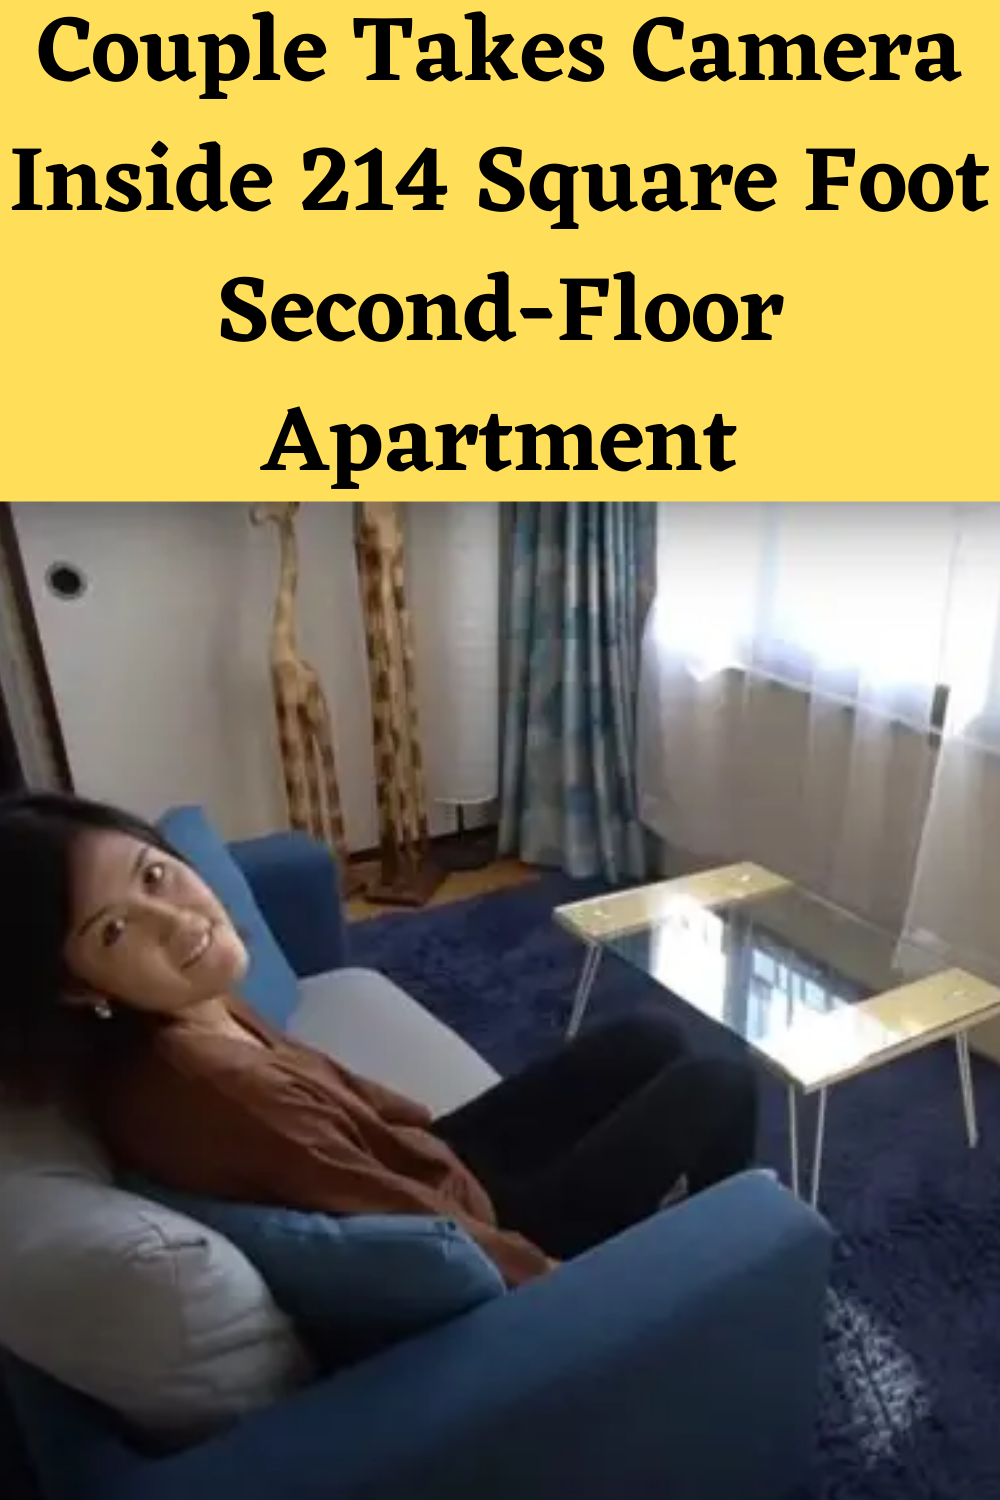 Couple Takes Camera Inside 214 Square Foot Second-